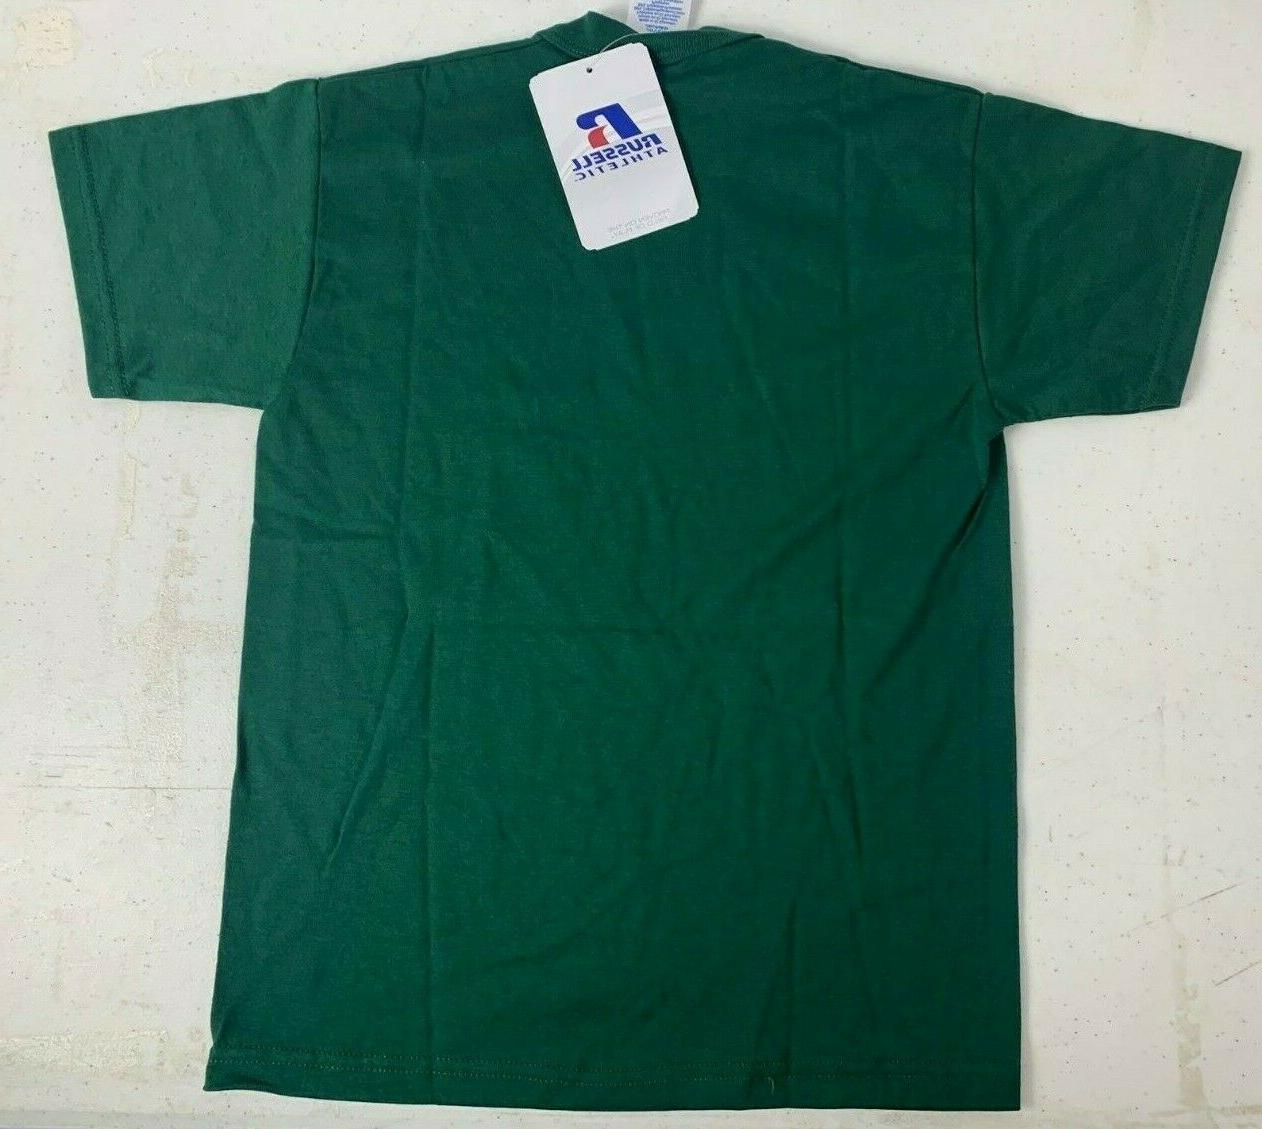 Russell Youth Blank T-Shirt NWT Size T4